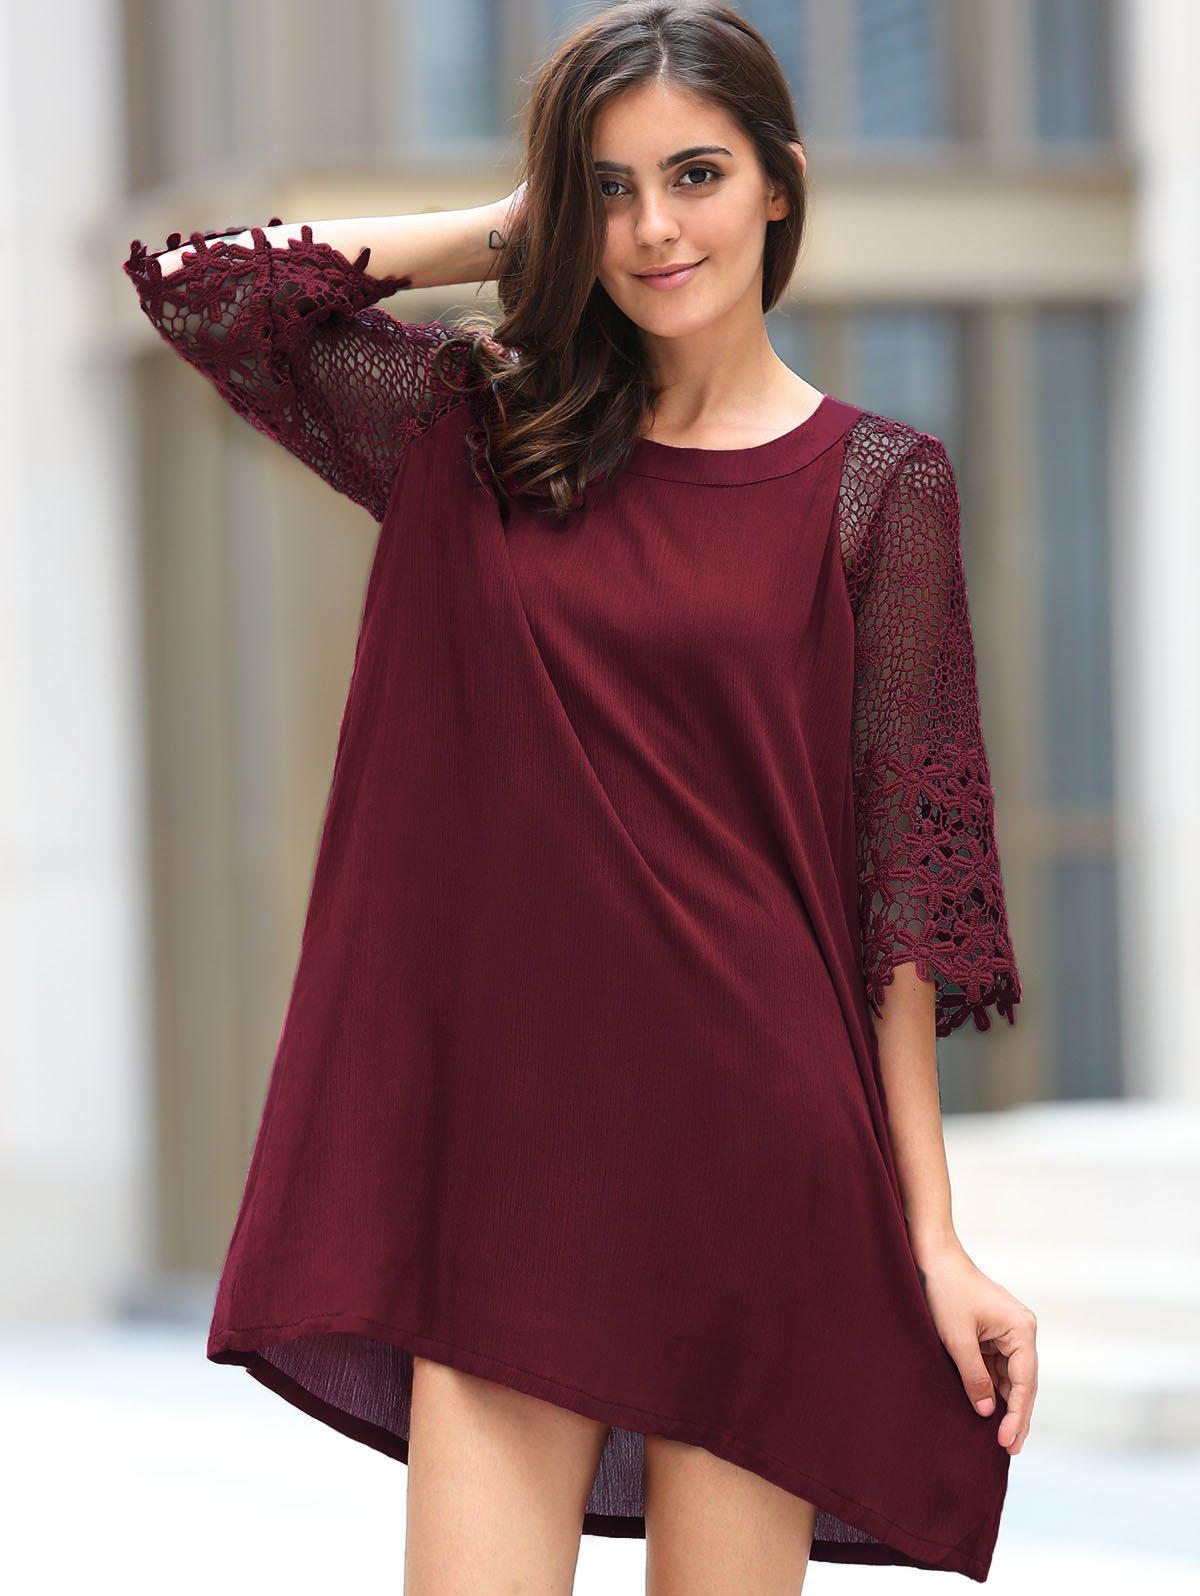 Trendy 3/4 Sleeve Round Collar Loose-Fitting Lace Spliced Women's Dress